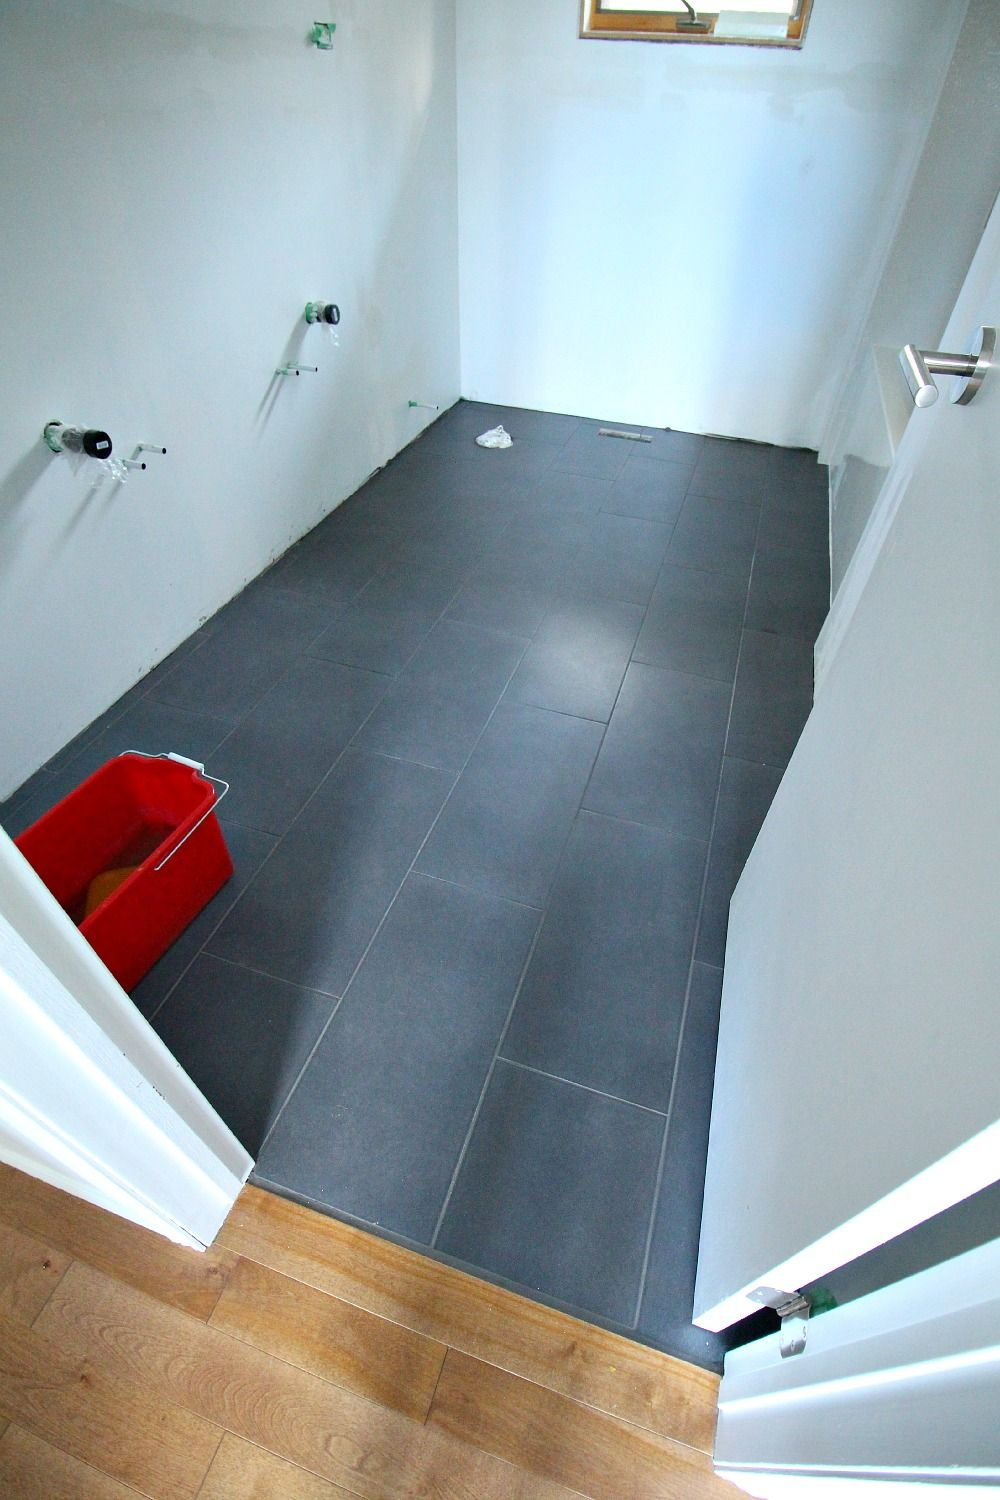 Floor tile for bathrooms andor entryway remodel inspiration charcoal grey large rectangular bathroom floor tile with dark grout see the tiling process so you know what to expect dailygadgetfo Image collections